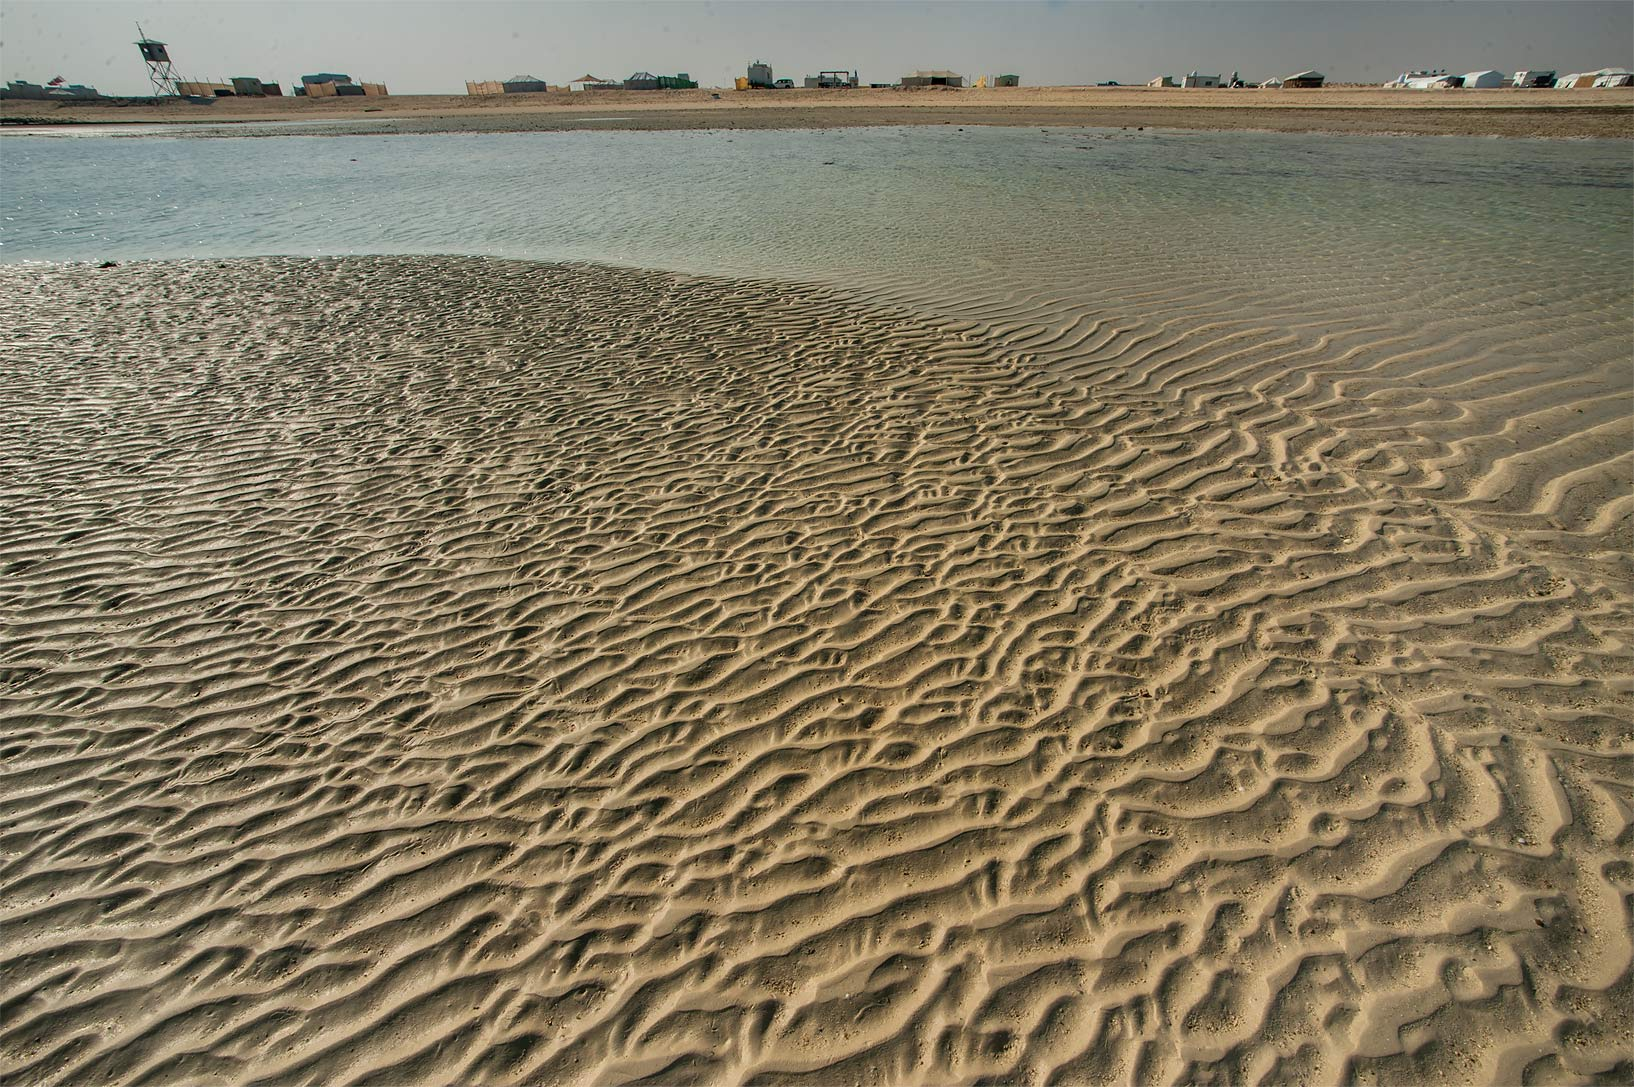 Sand ripples on a beach in Marouna. Northern Qatar